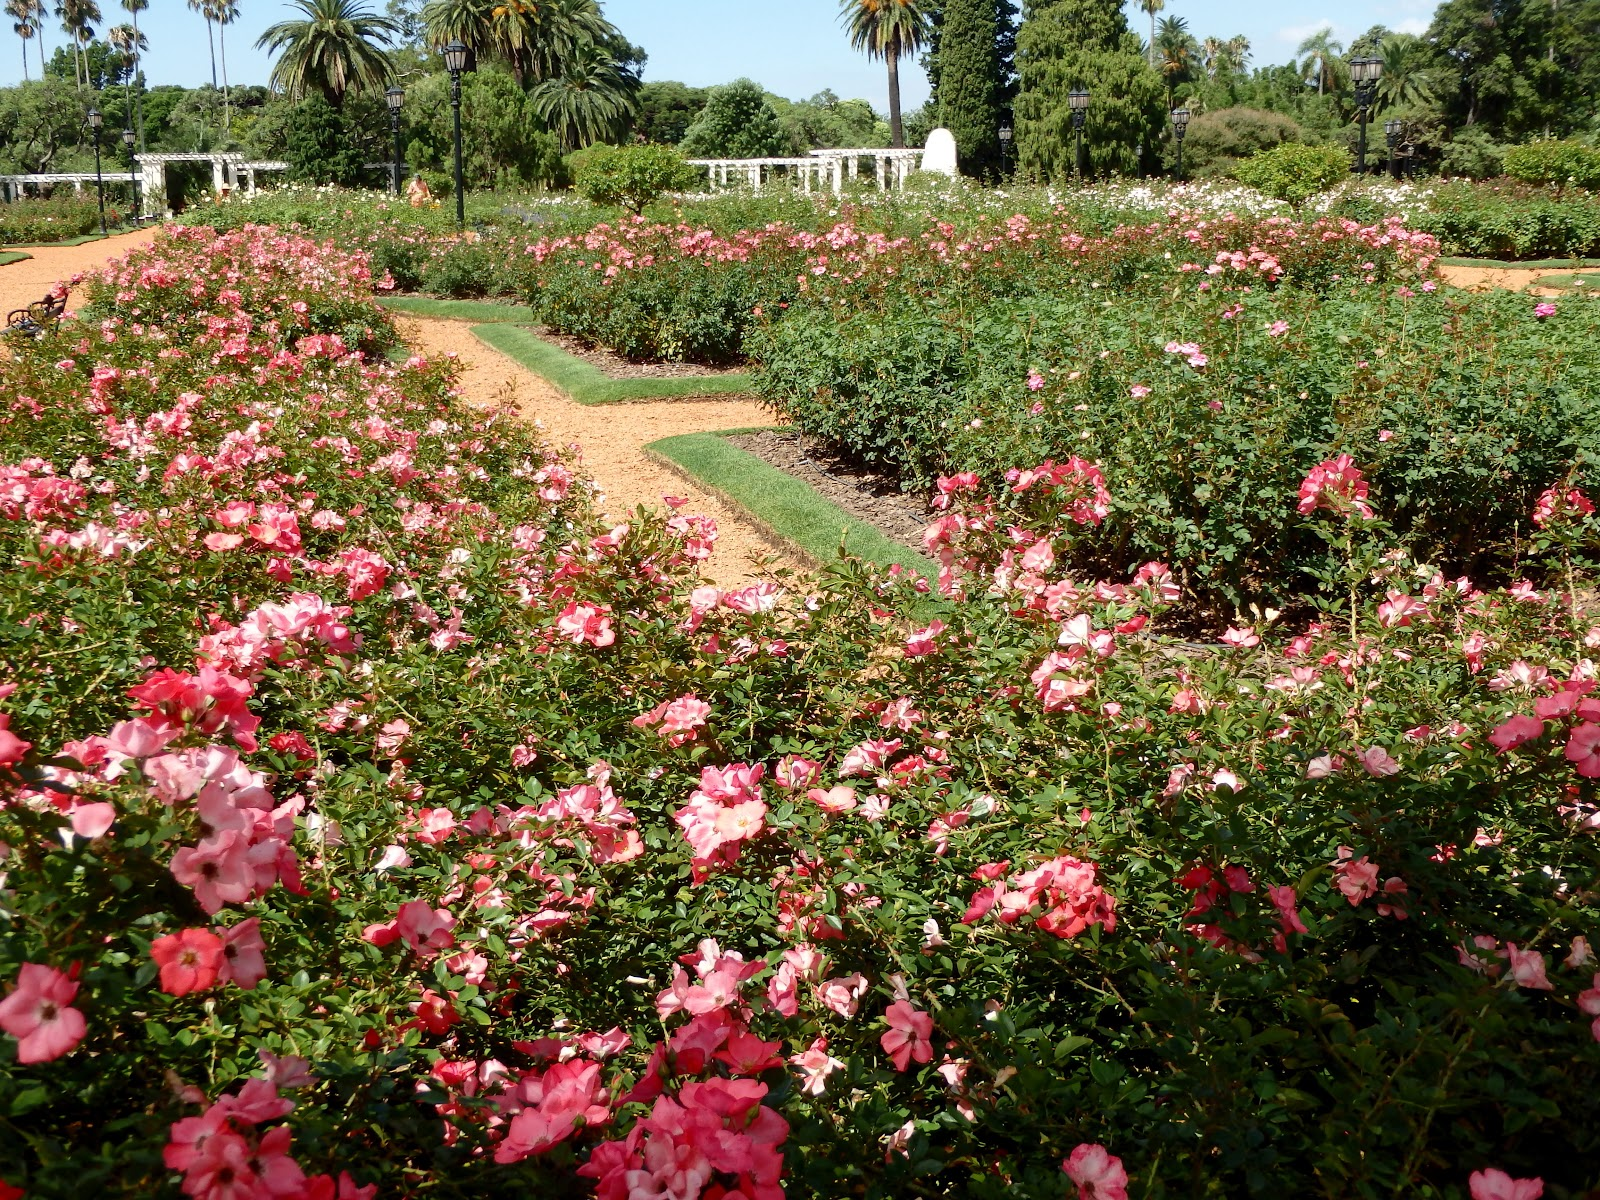 Suitcase and World: For the Rose Lover. Paseo del Rosedal.